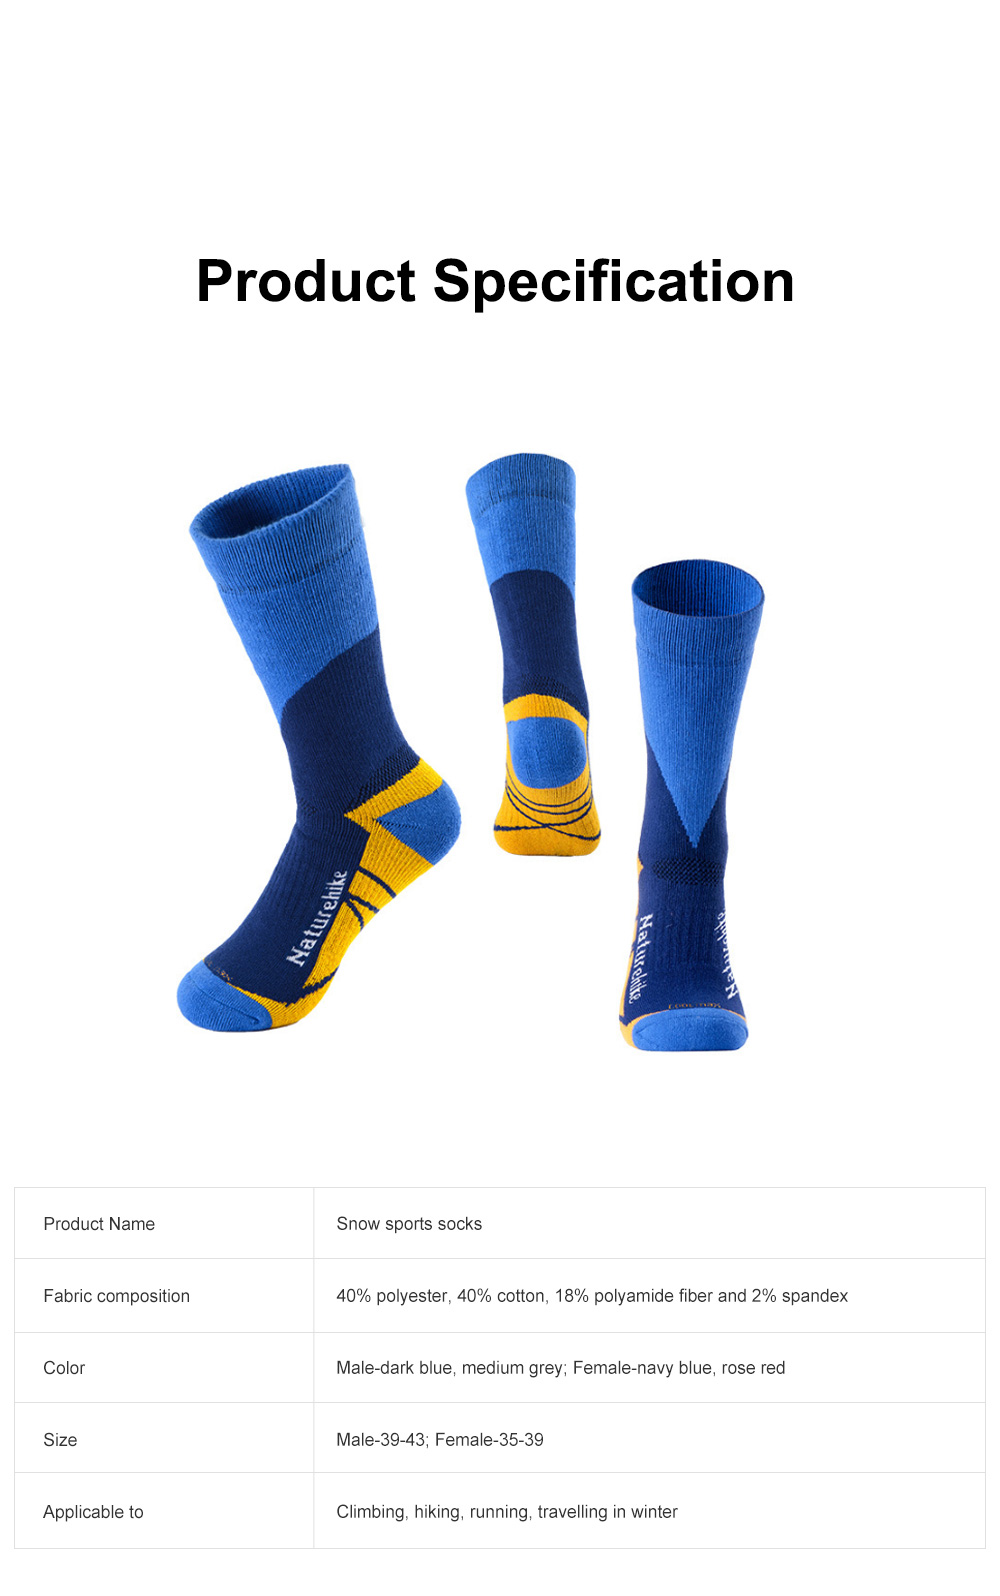 Naturehike Outdoor Snow Sports Socks for Climbing Cold Area Travelling Coolmax Quick-dry Socks Comfortable Thermal Socks 9